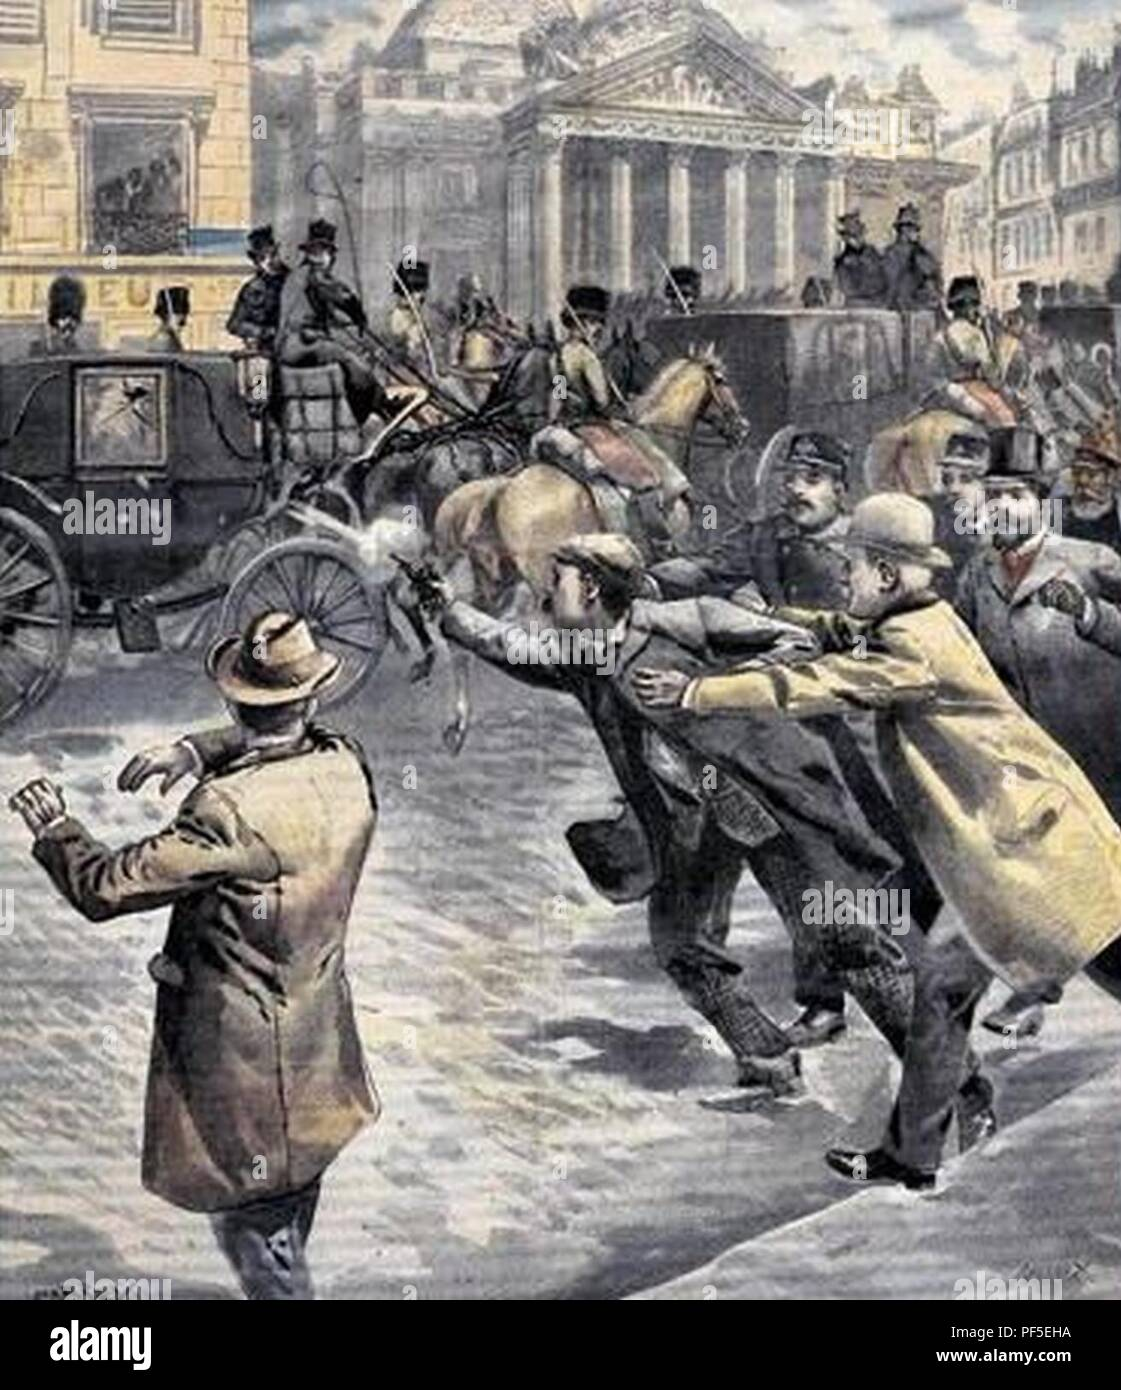 Assassination attempt on king Leopold II of Belgium in Bruxelles 1902. Stock Photo